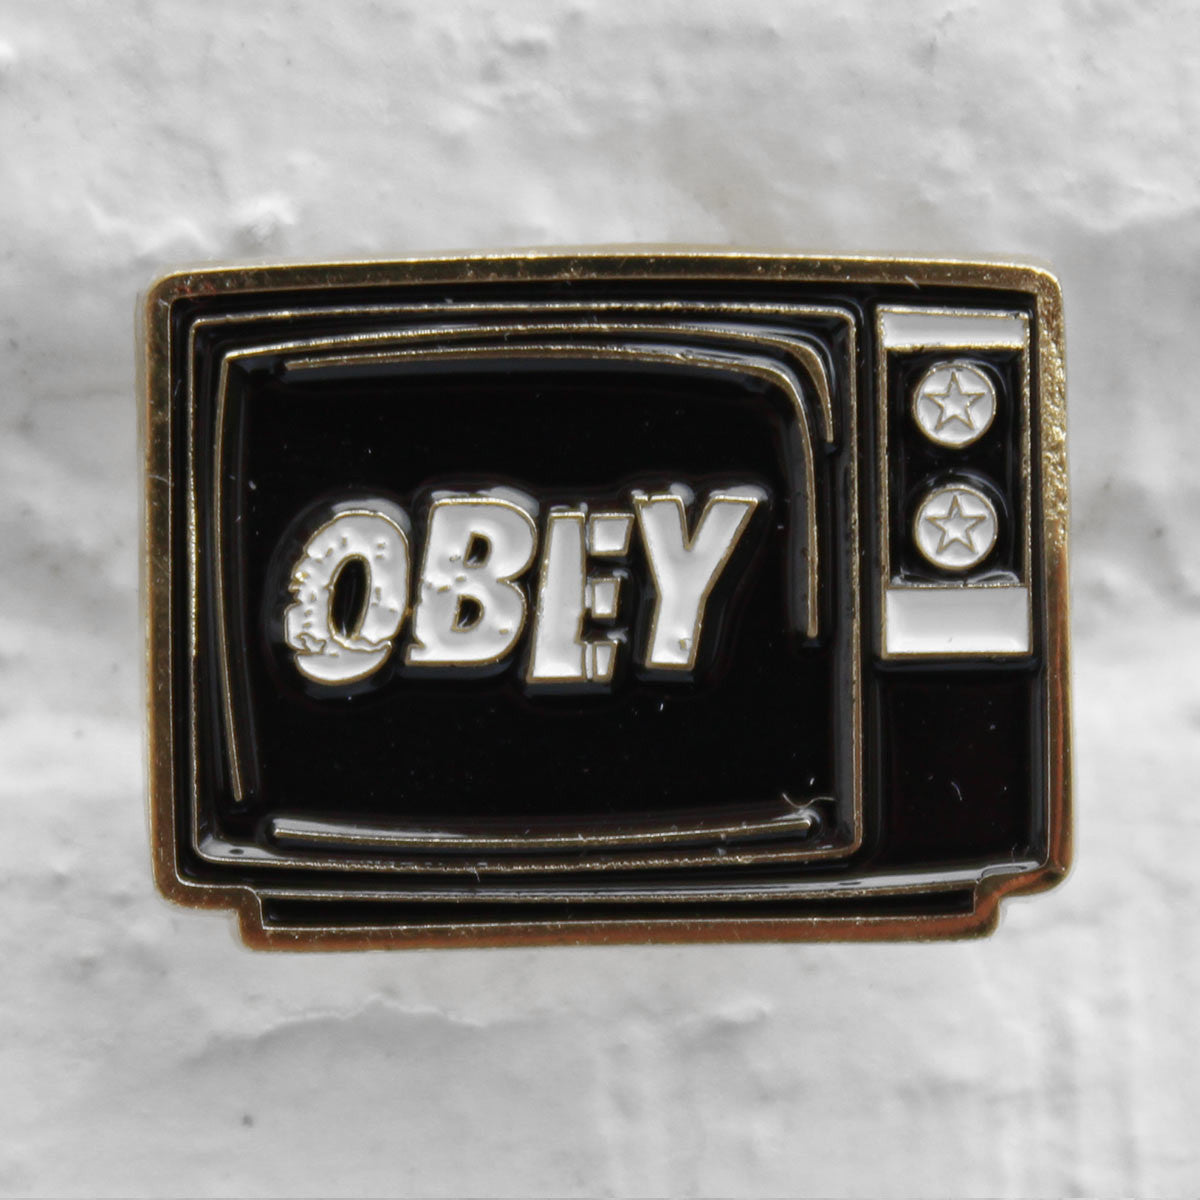 Obey What To Think Pin Badge Black